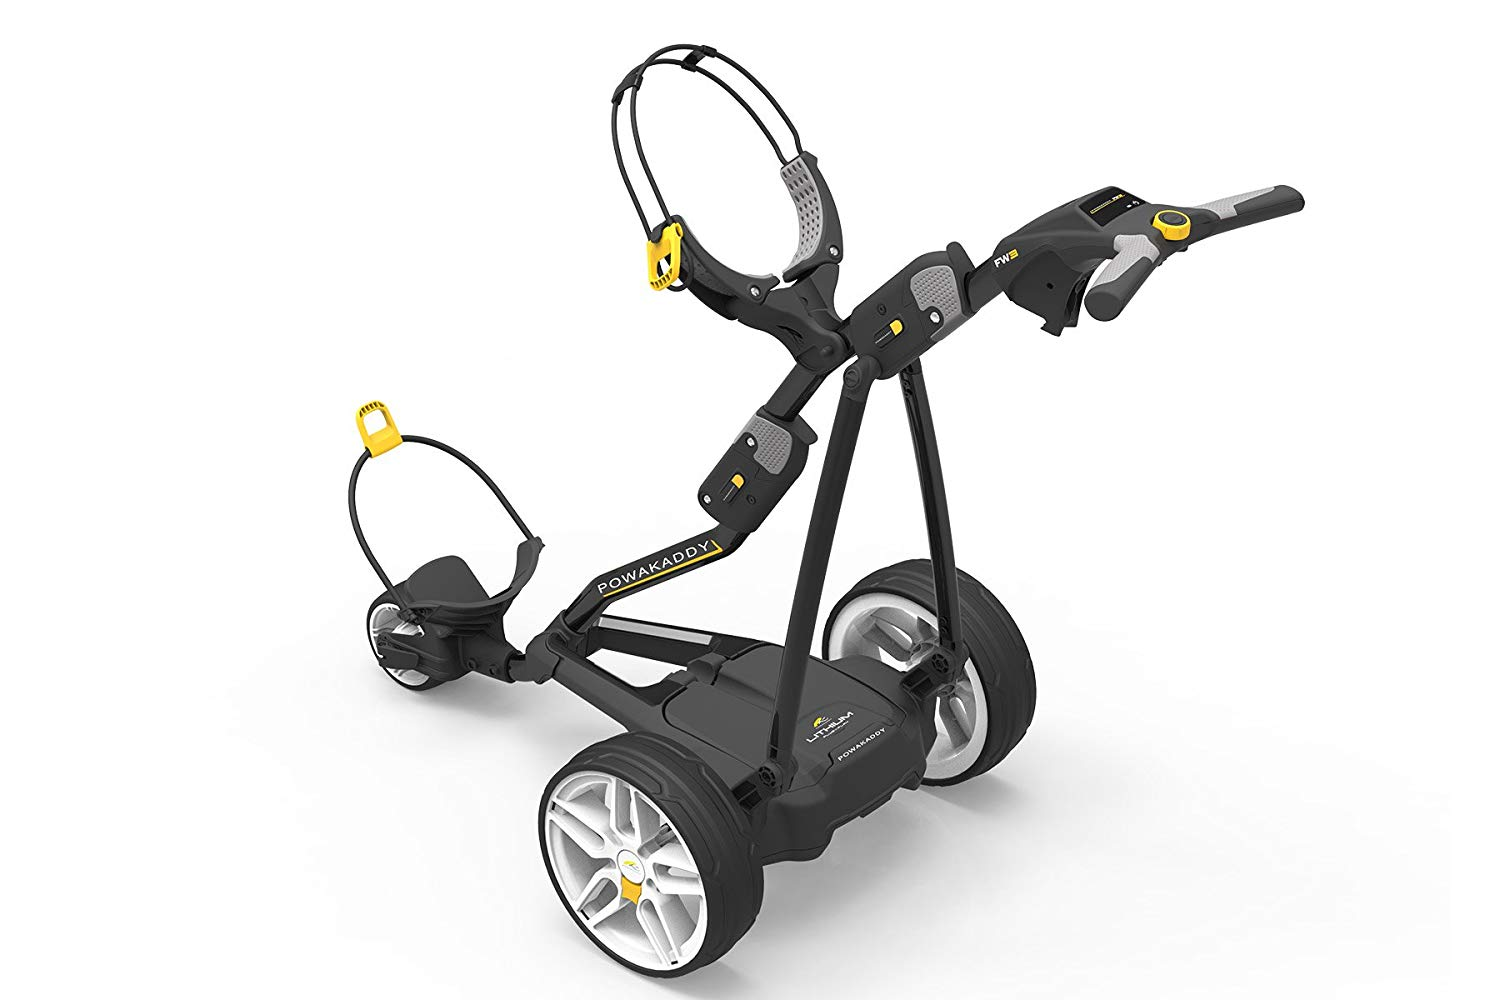 Top 10 Best Electric Golf Push Carts In 2021 Reviews 8